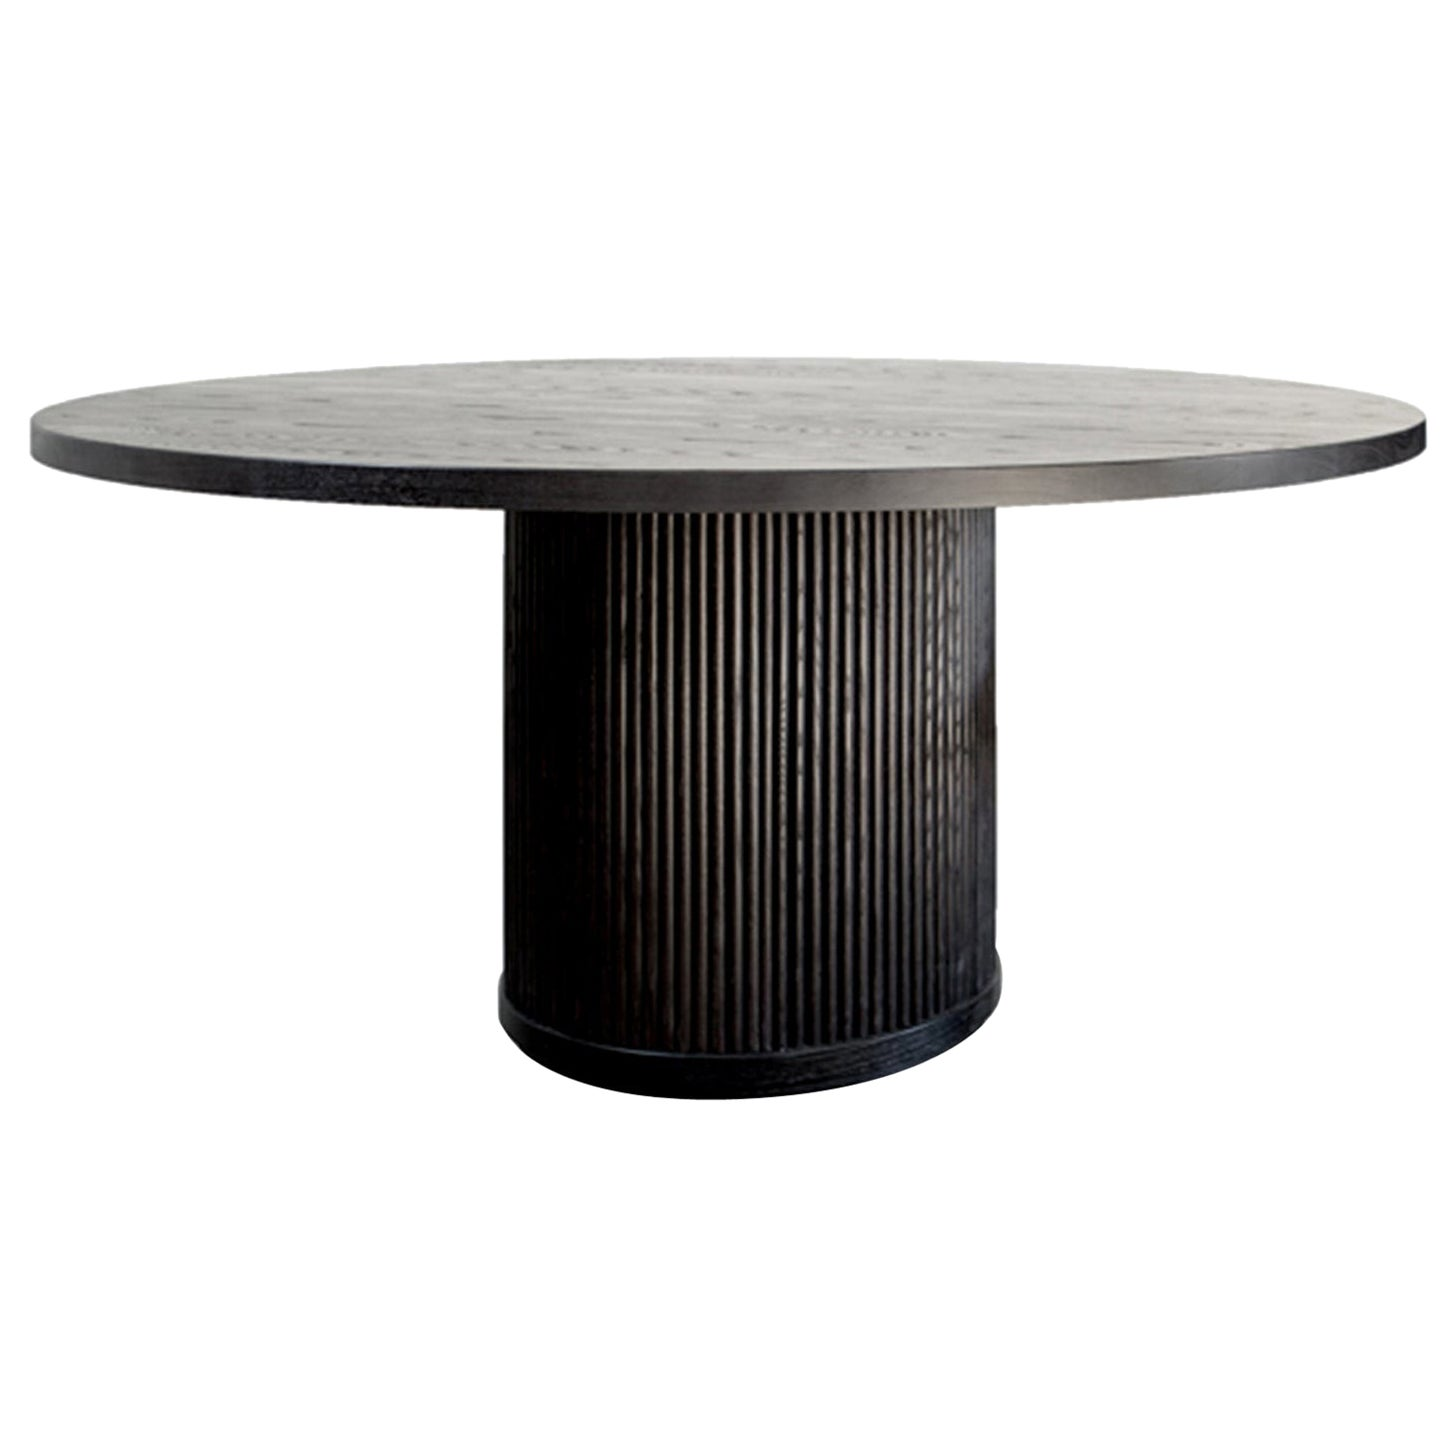 Custom Radius Meeting Table Made with a Solid Wood Top and Tambour Wrapped Base